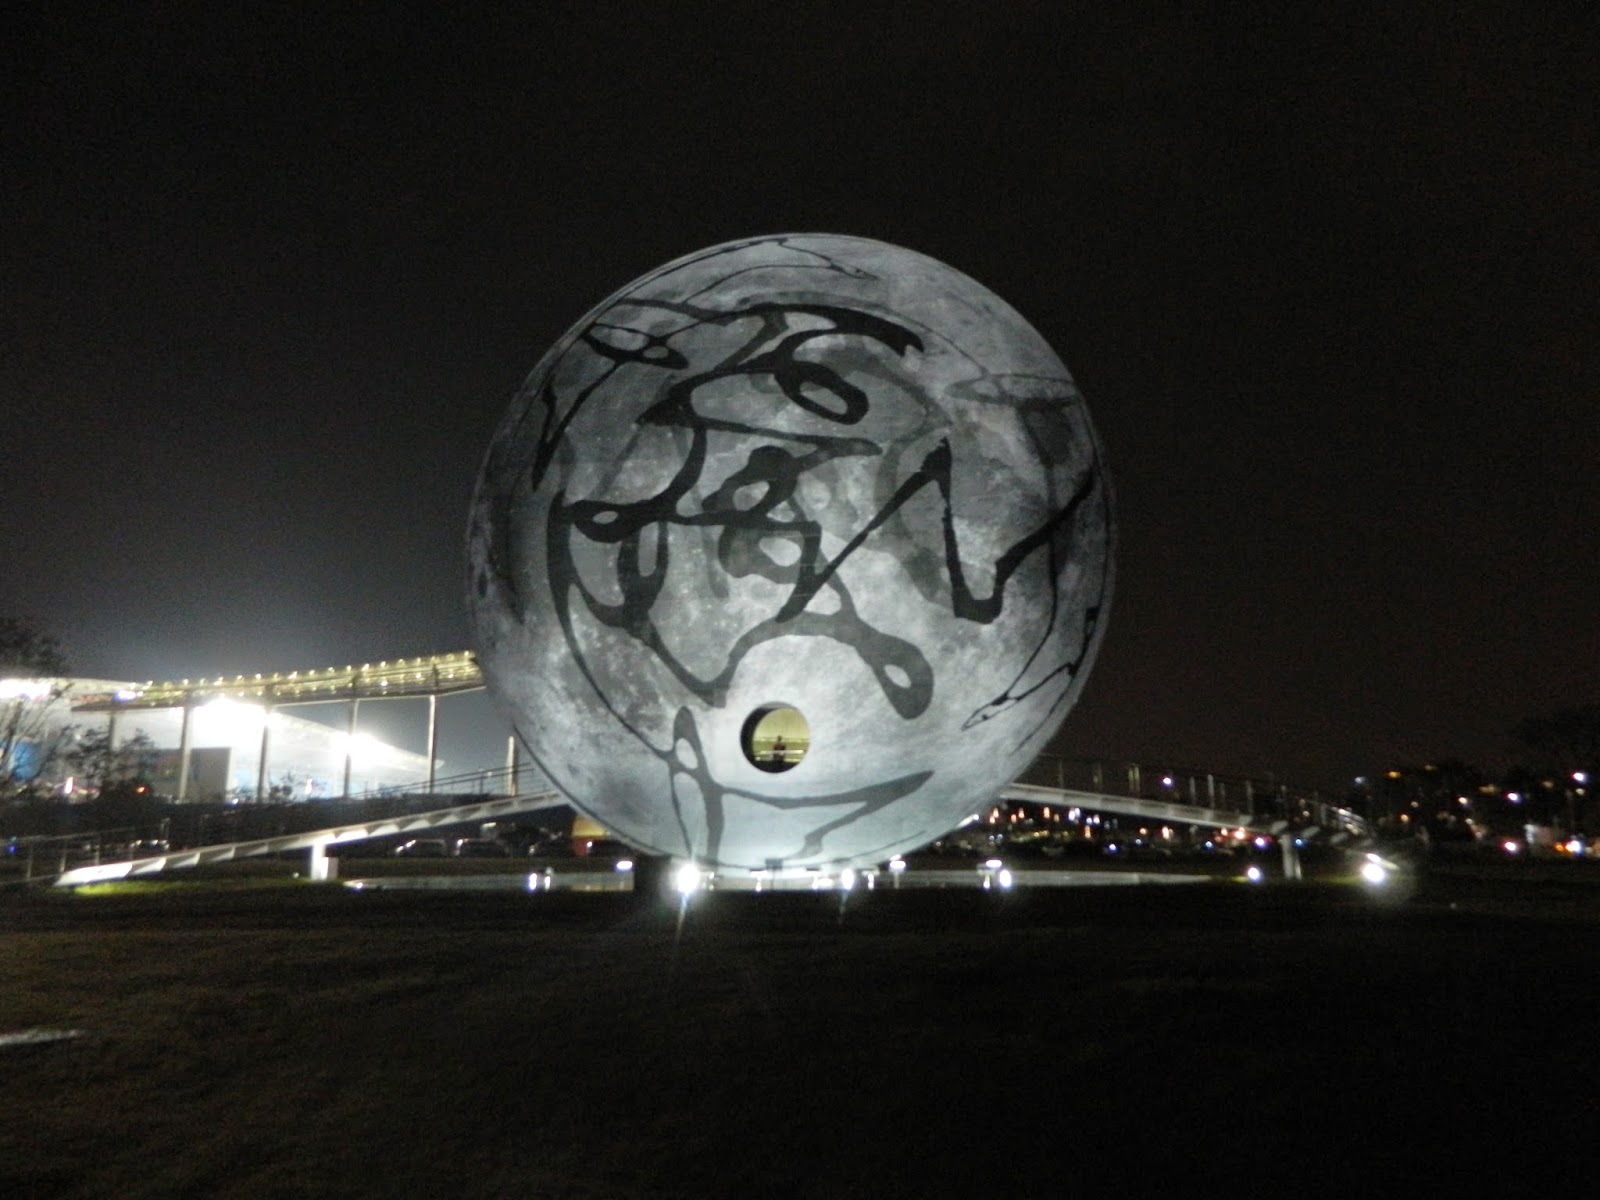 Moon Art at the Asian Games main Stadium